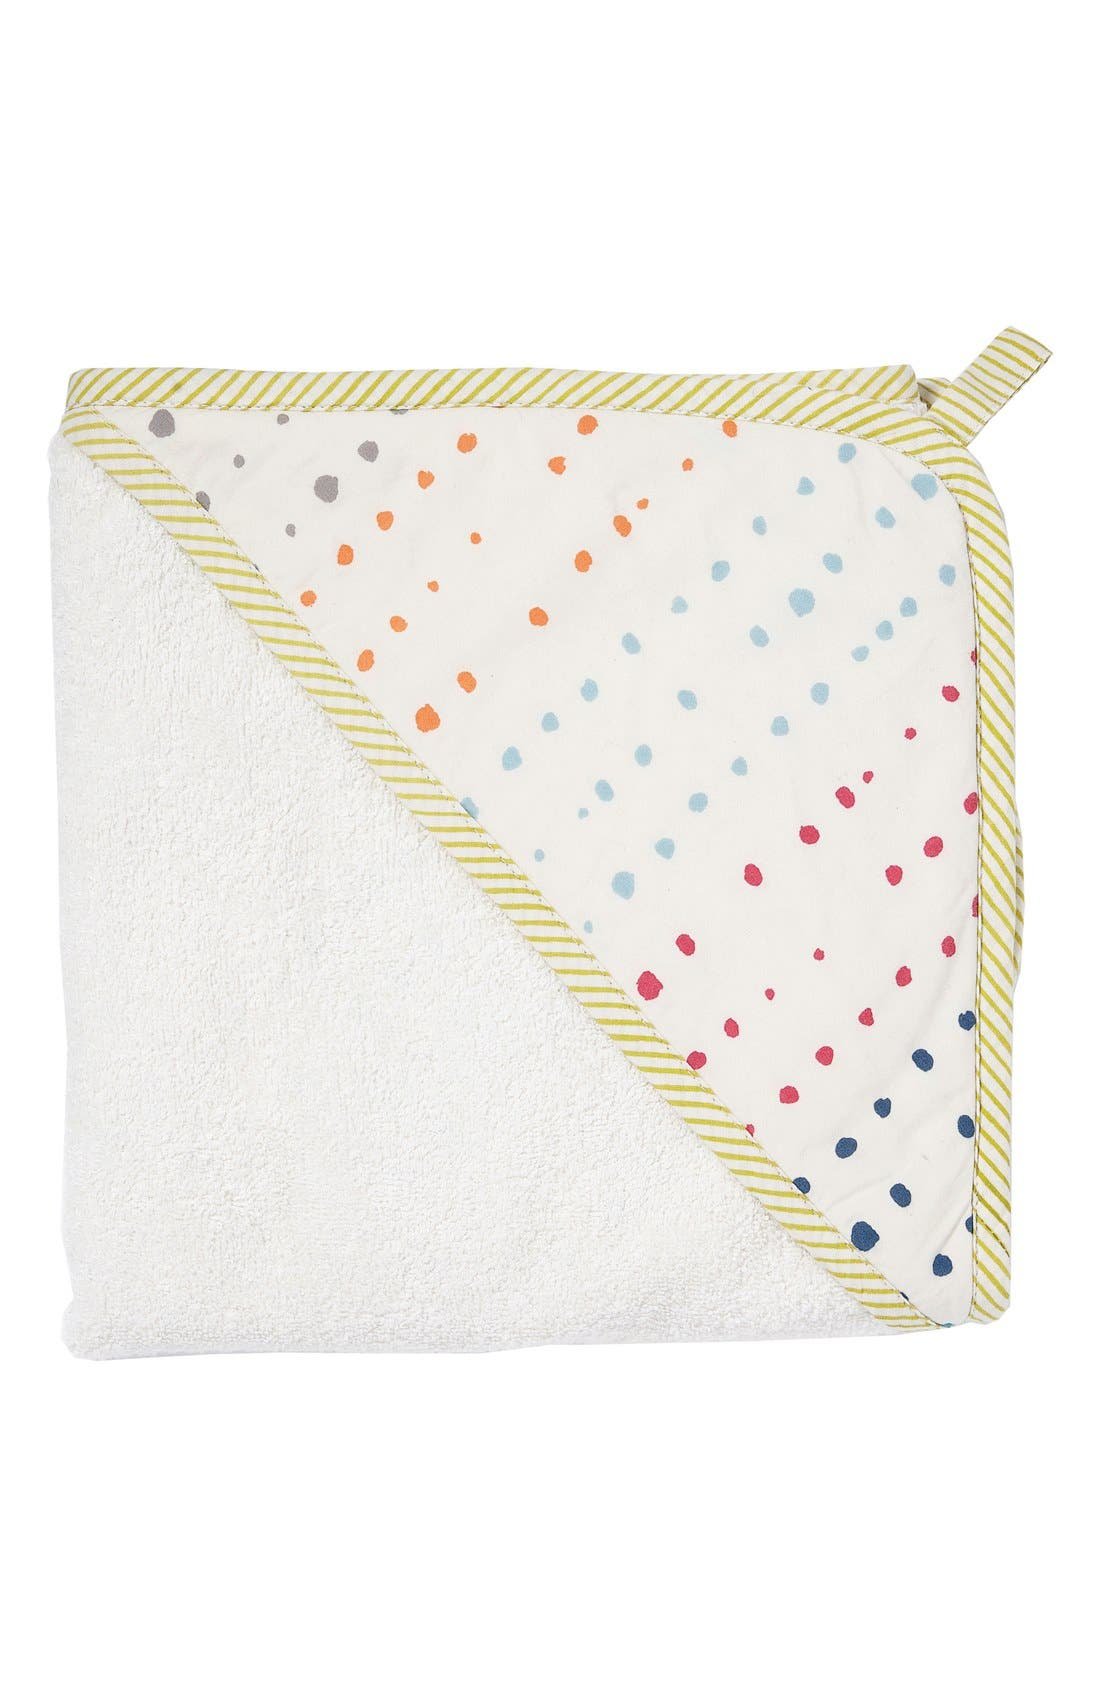 Print Hooded Towel,                         Main,                         color, Painted Dots